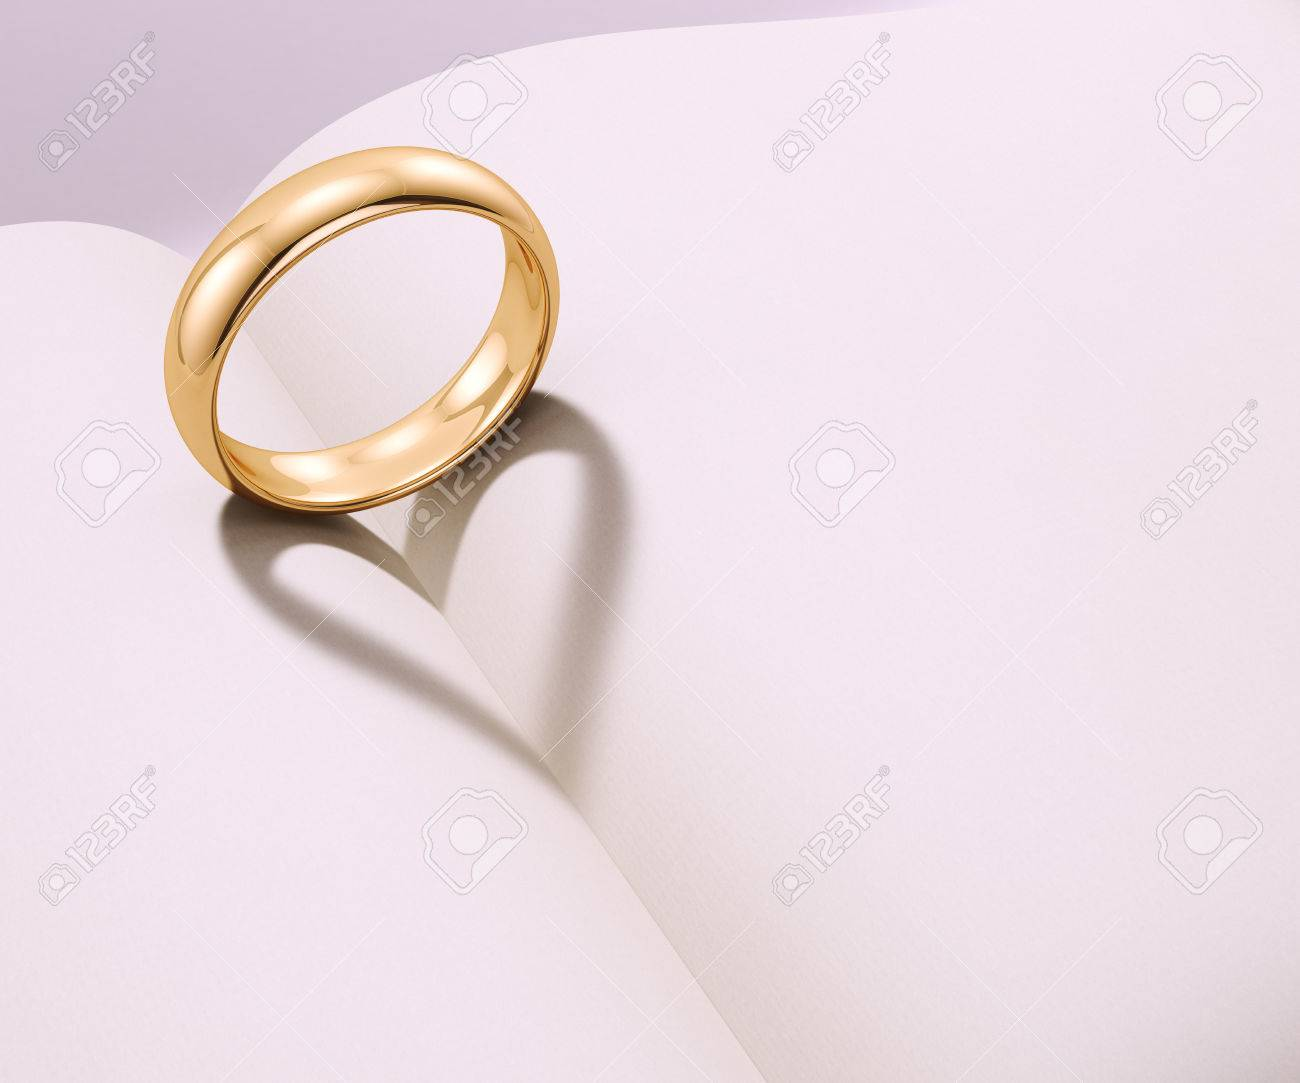 Wedding ring casting heart shaped shadow over a blank book - 51112440